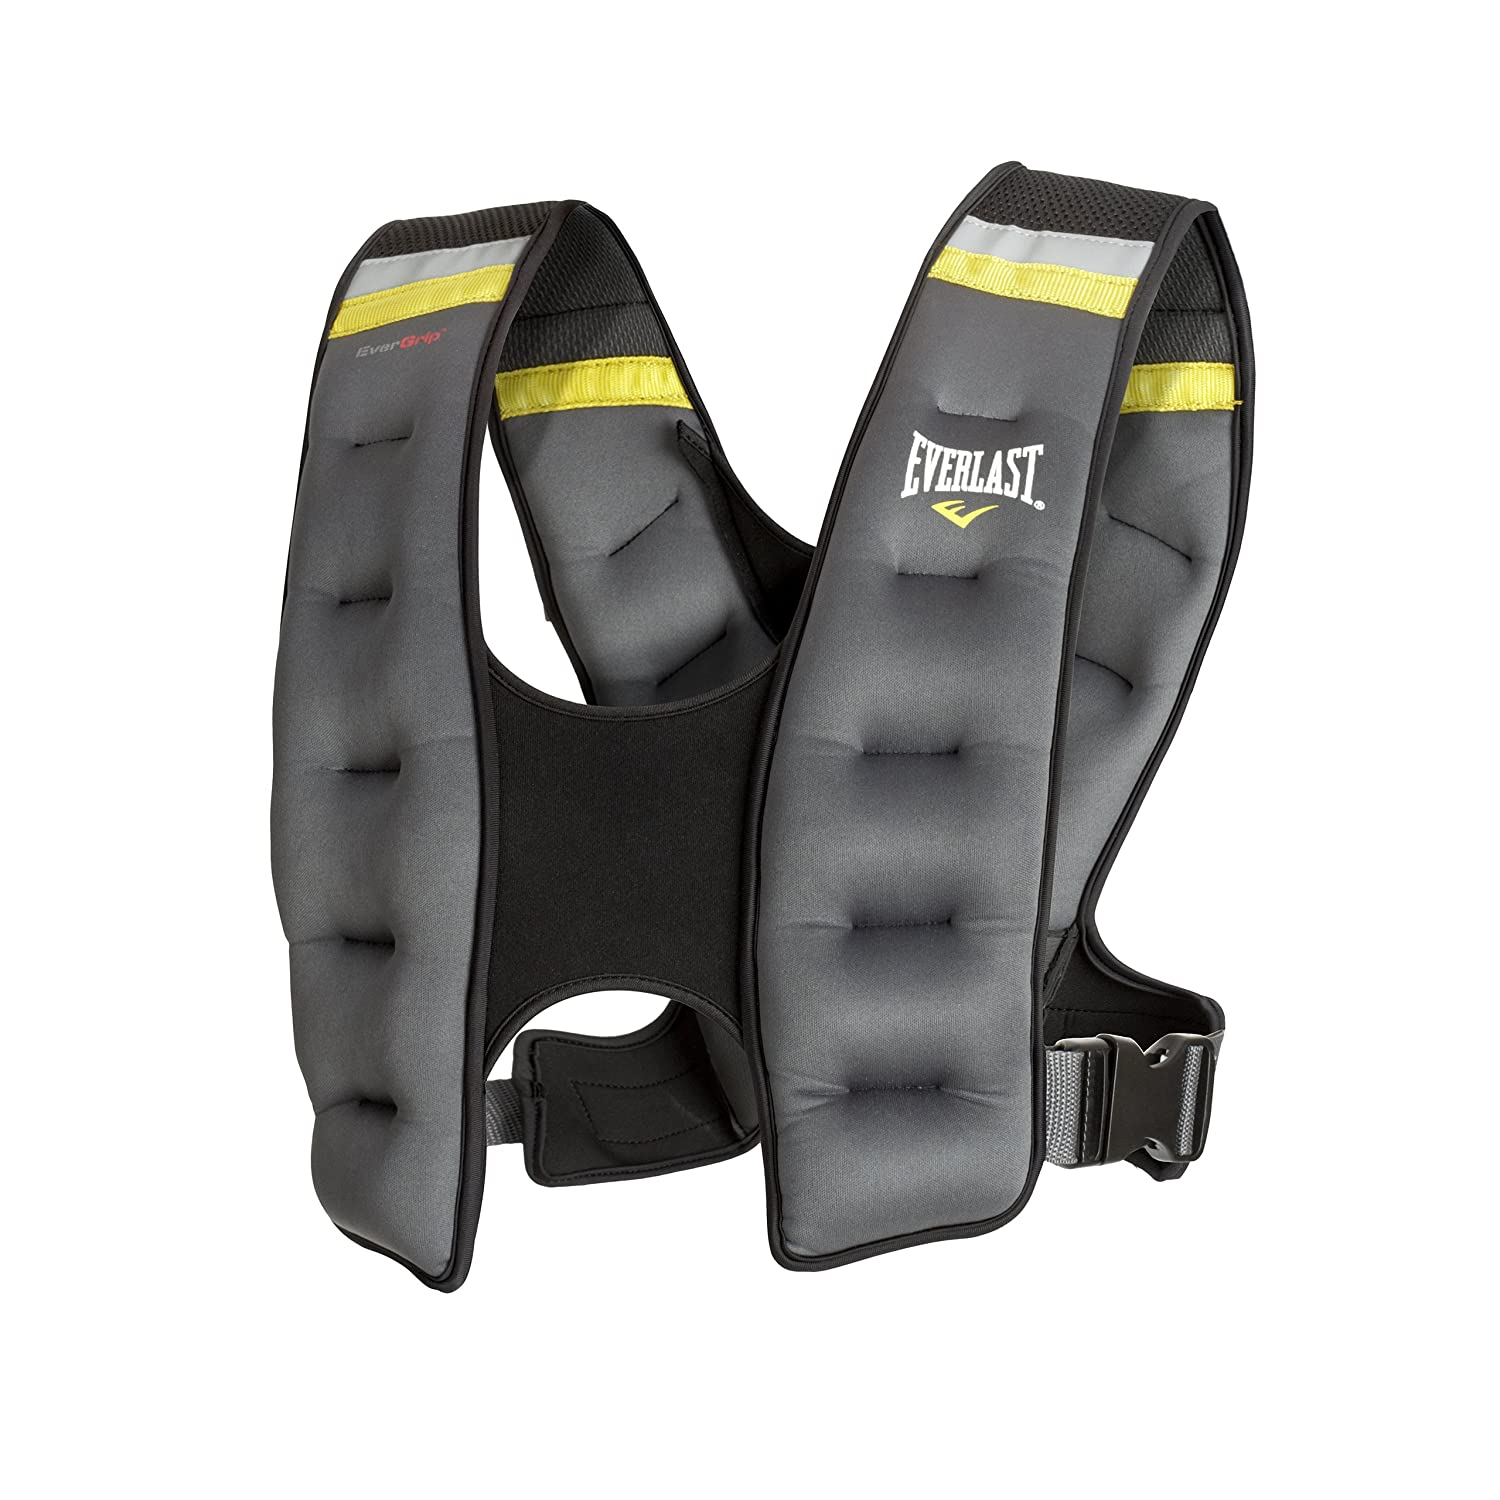 Weighted Vest Everlast Workout Fitness Weights Exercise ...